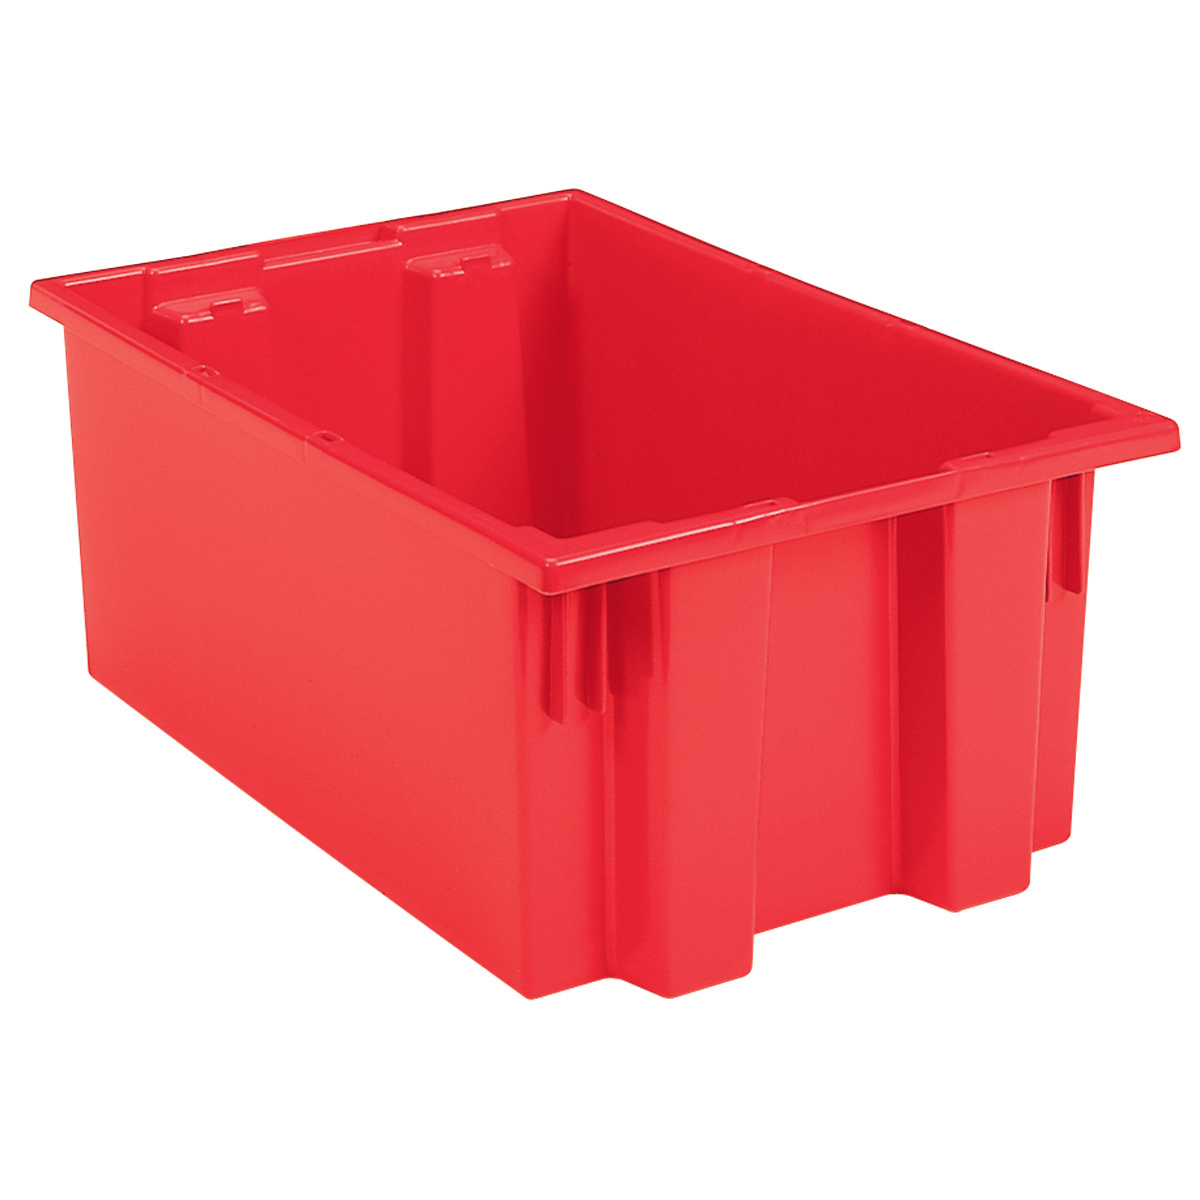 Nest & Stack Tote 19-1/2 x 15-1/2 x 10, Red (35190RED).  This item sold in carton quantities of 6.